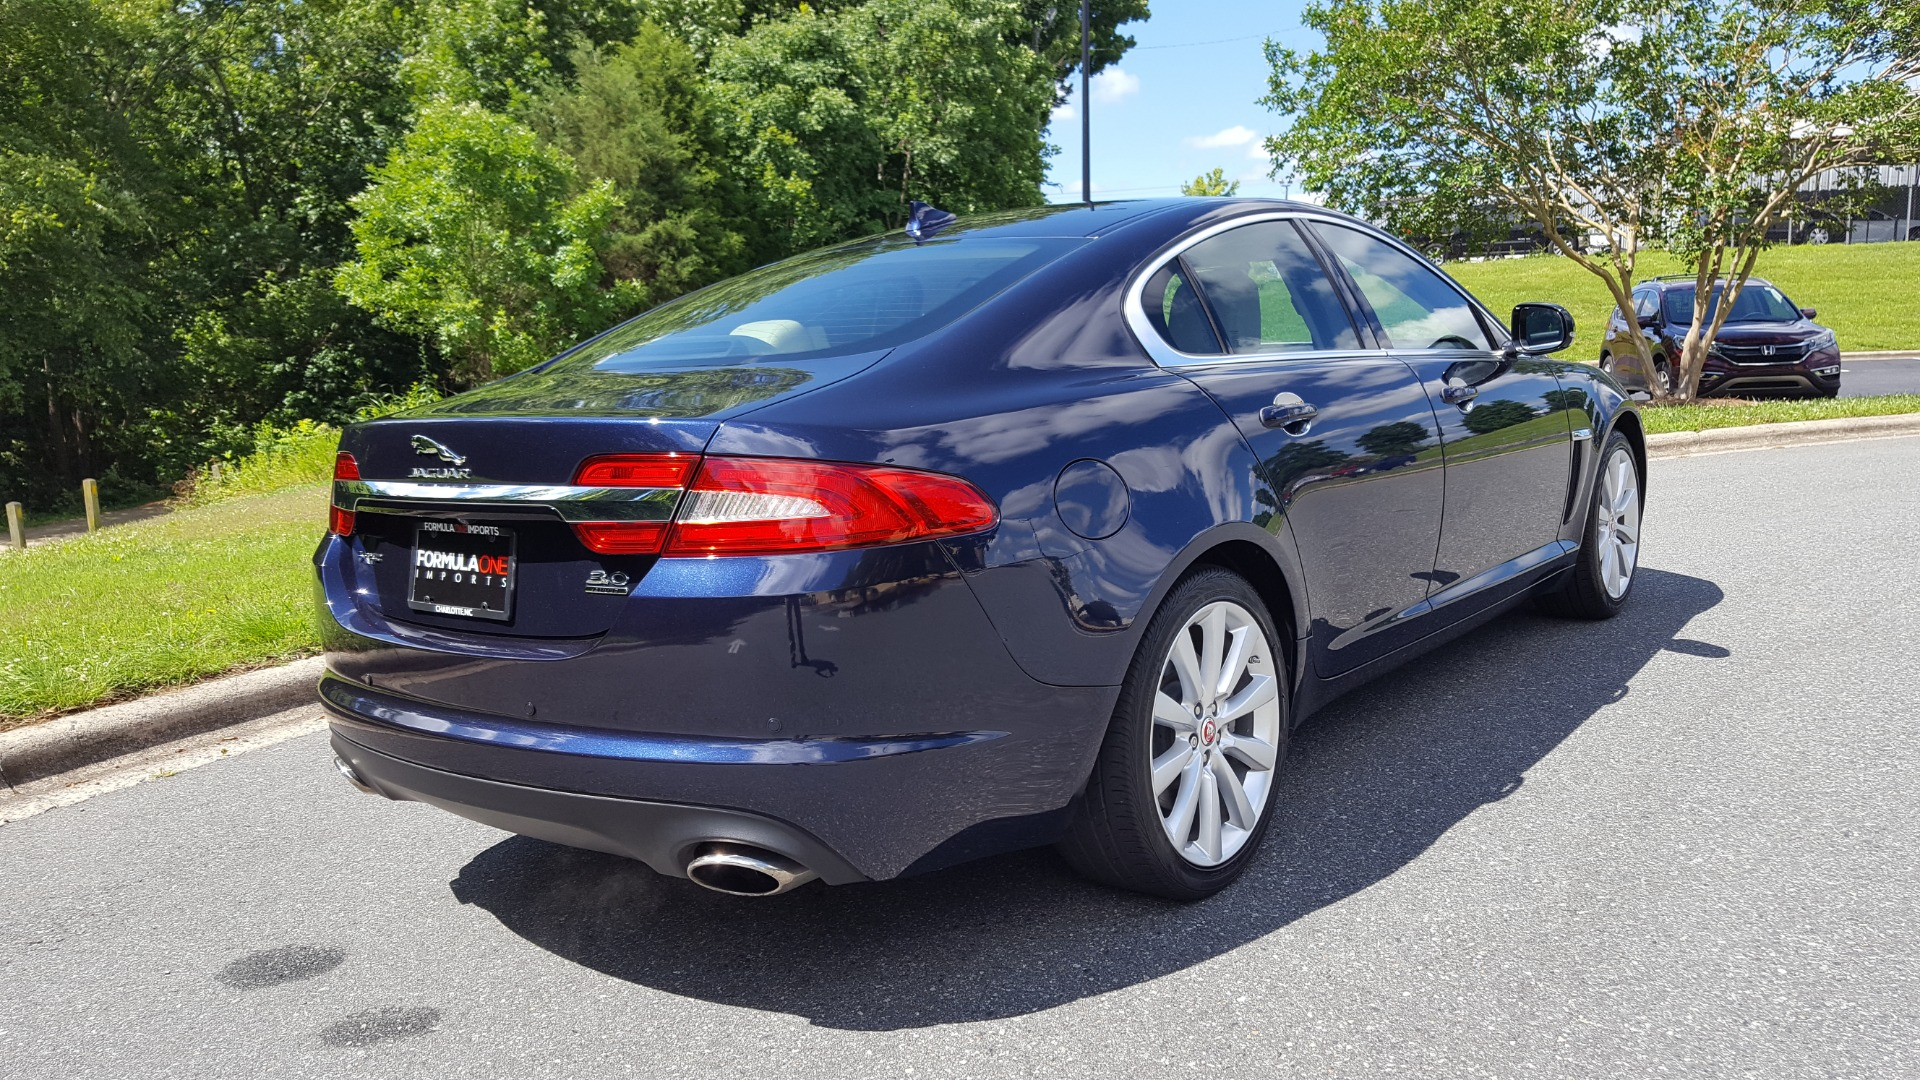 Used 2014 Jaguar XF V6 SC AWD PREMIUM / NAV / COLD CLIMATE PKG / VISION / REARVIEW for sale $18,995 at Formula Imports in Charlotte NC 28227 6